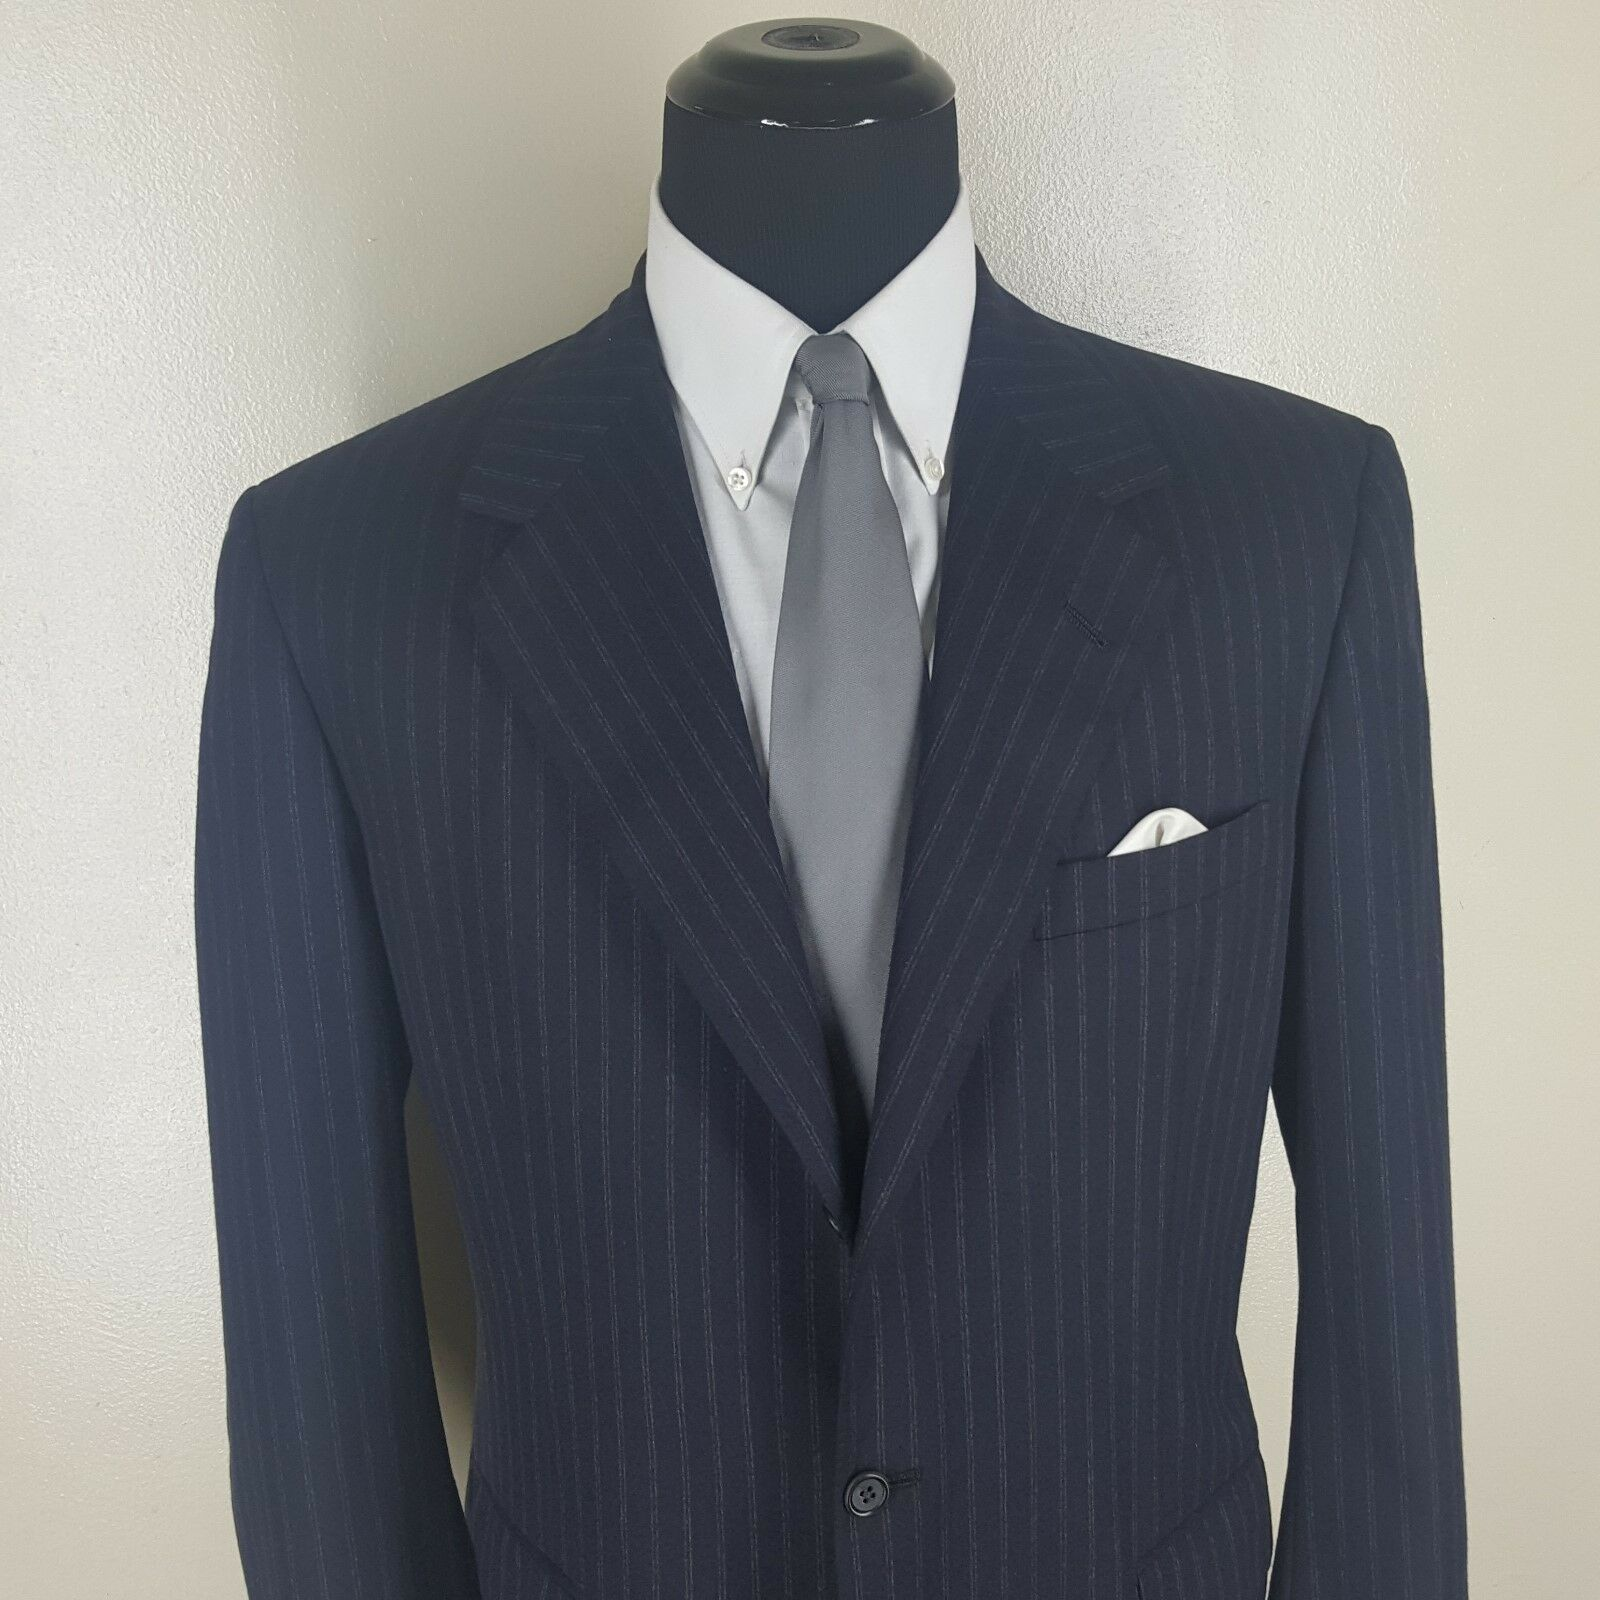 OXXFORD Super 100's  Blau Striped Sport Coat 3 Btn Center Vent  43R  Fit 43-45 R